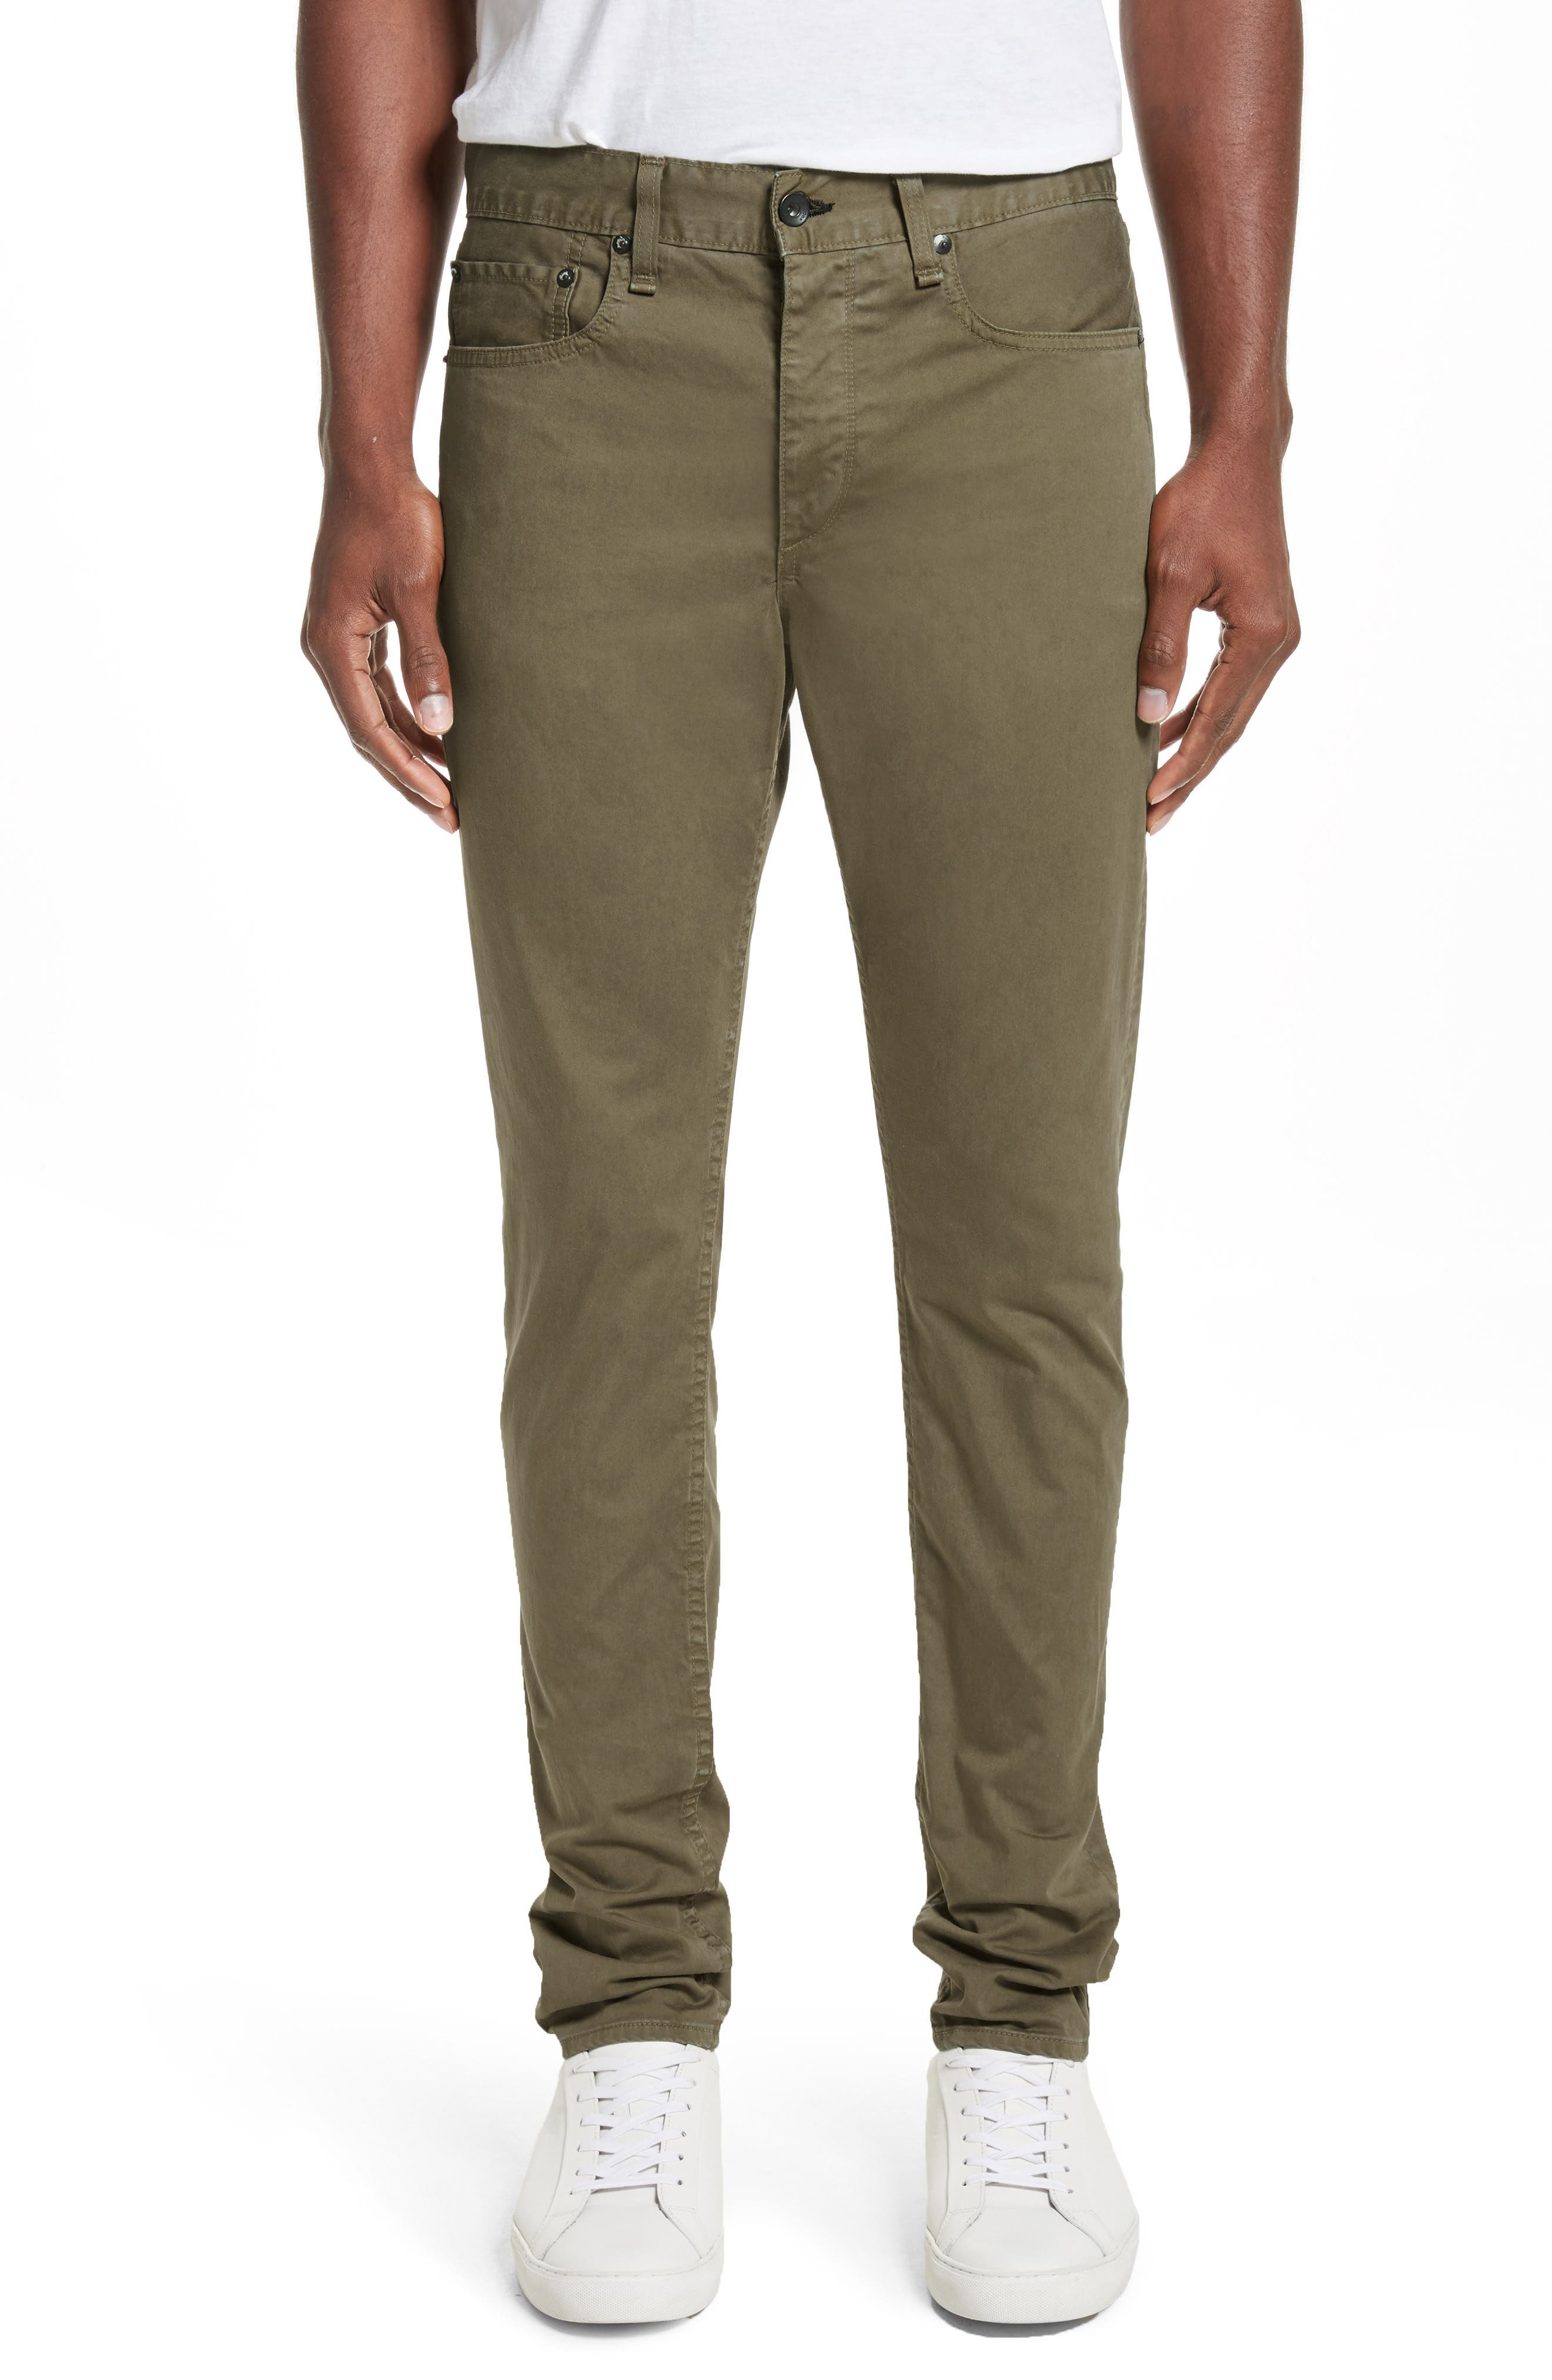 Fit 1 Twill Skinny Fit Pants,                         Main,                         color, Army